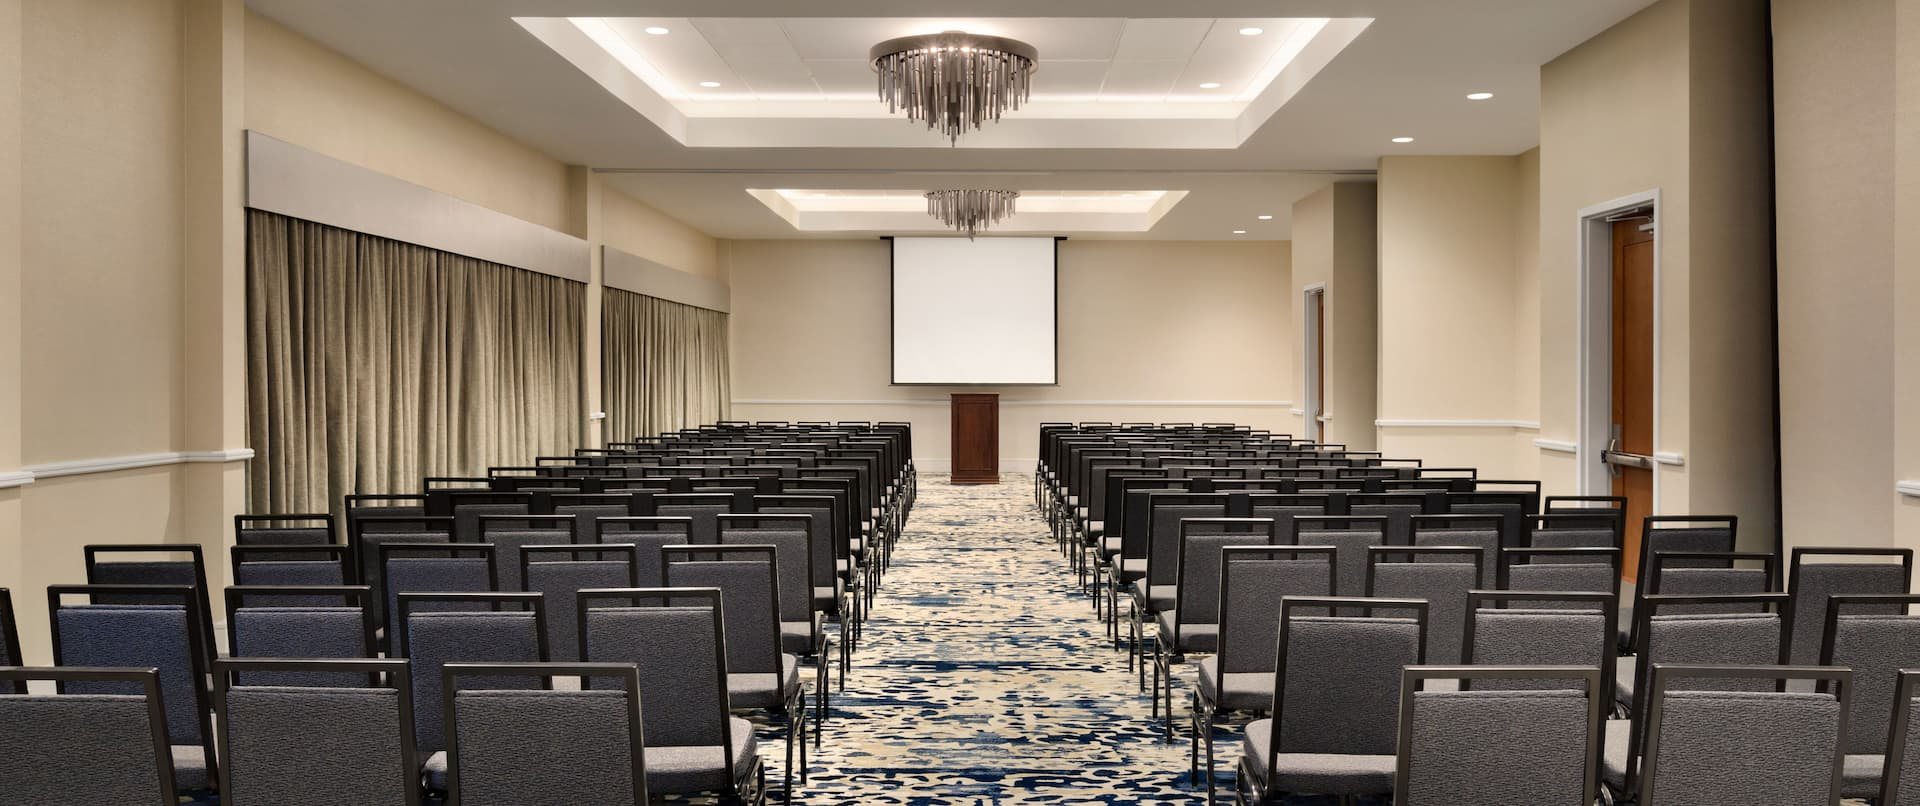 Embassy Suites Monterey Bay- Seaside, CA - Meeting Room Theatre Setup